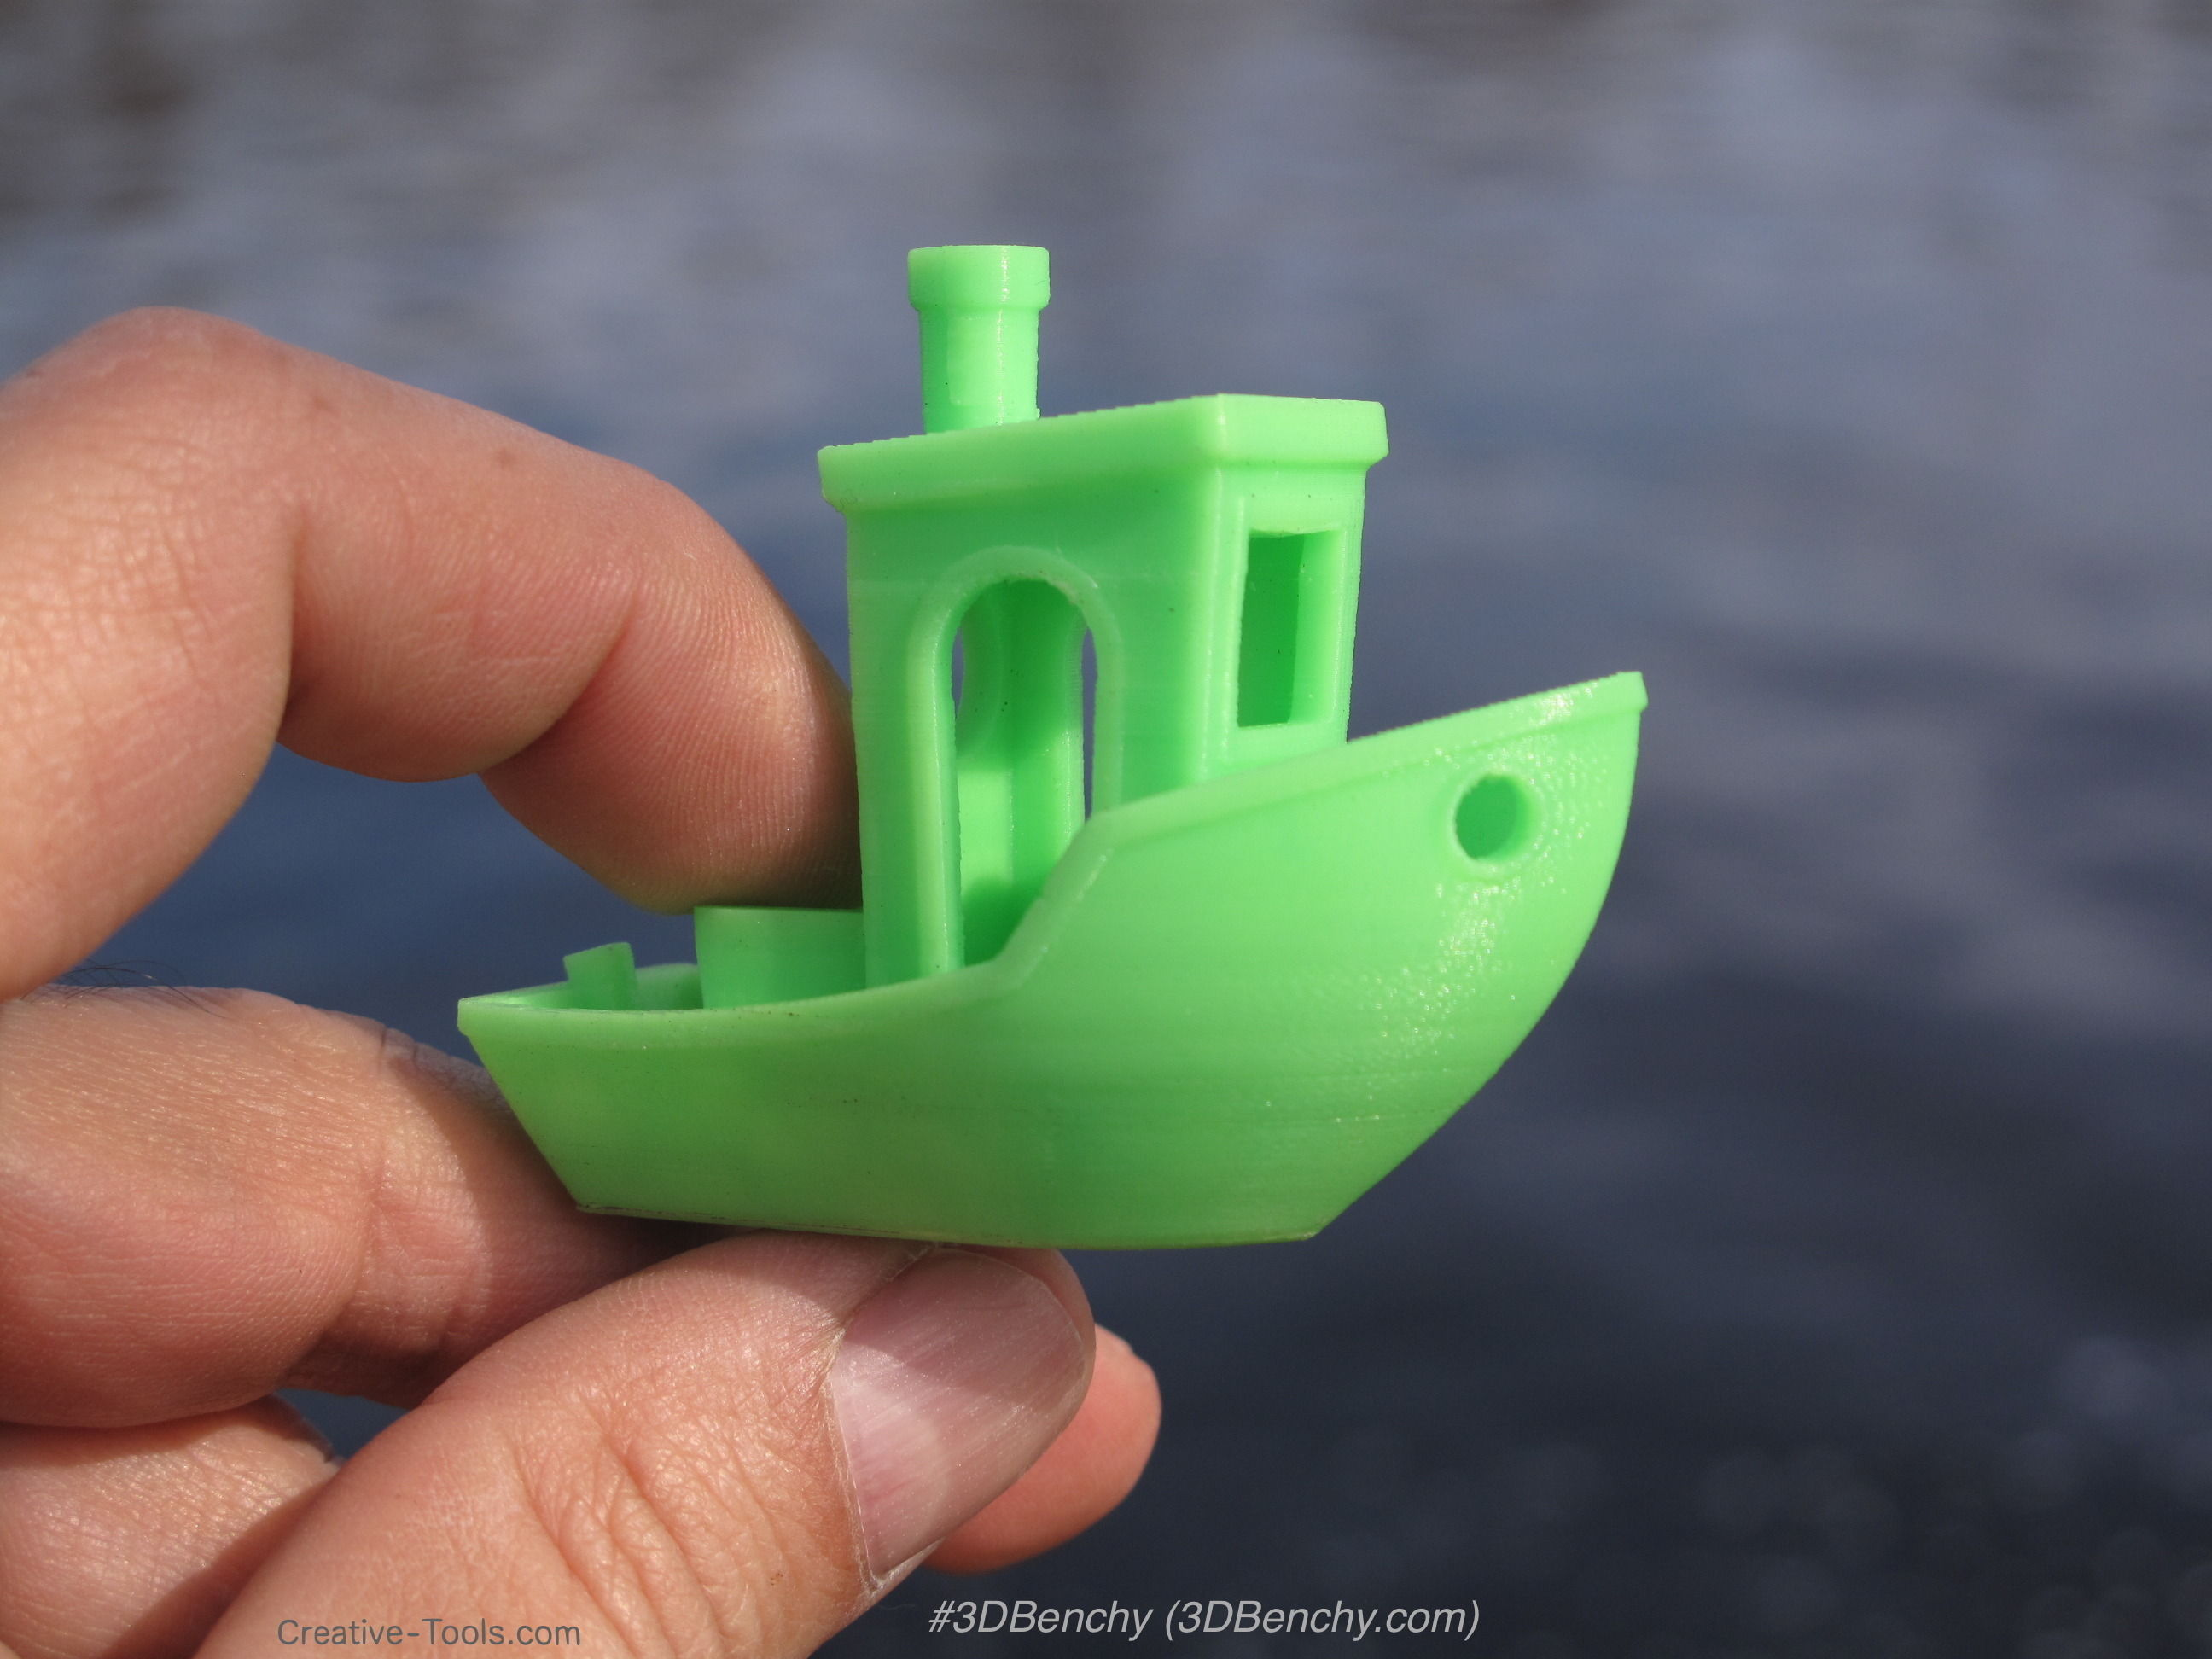 3DBenchy - The jolly 3D printing torture-test